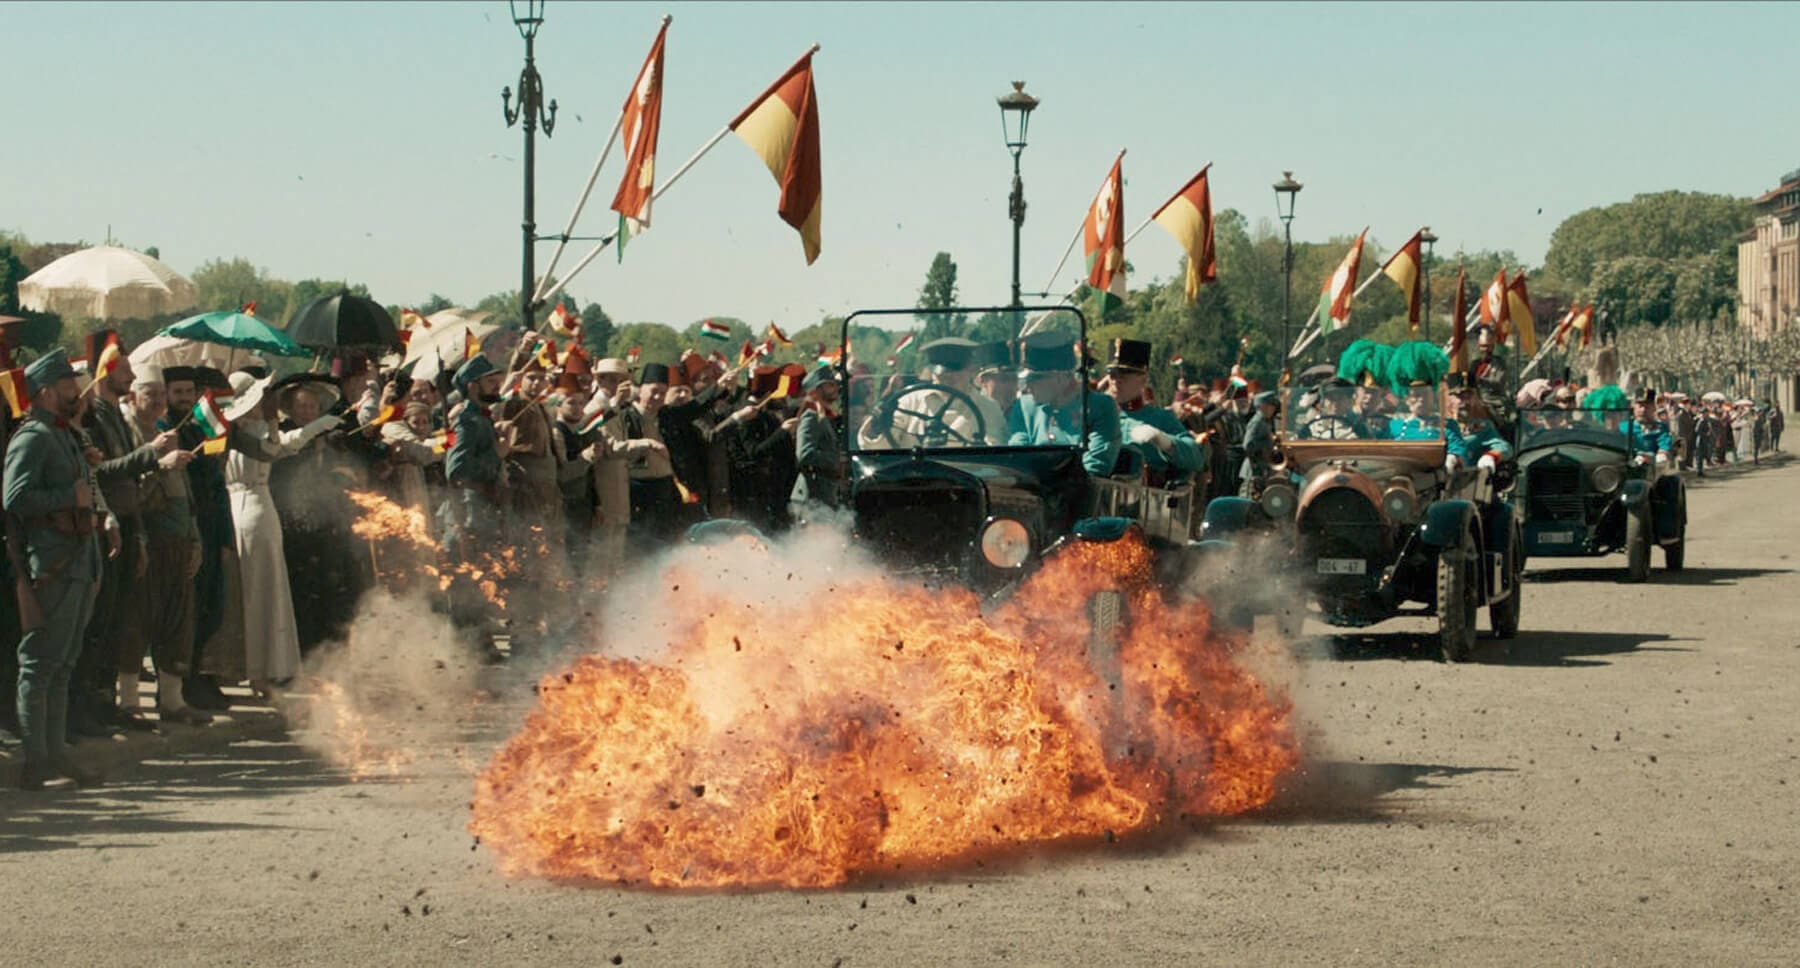 "A car driving through fire in a scene from the movie ""The King's Man"""